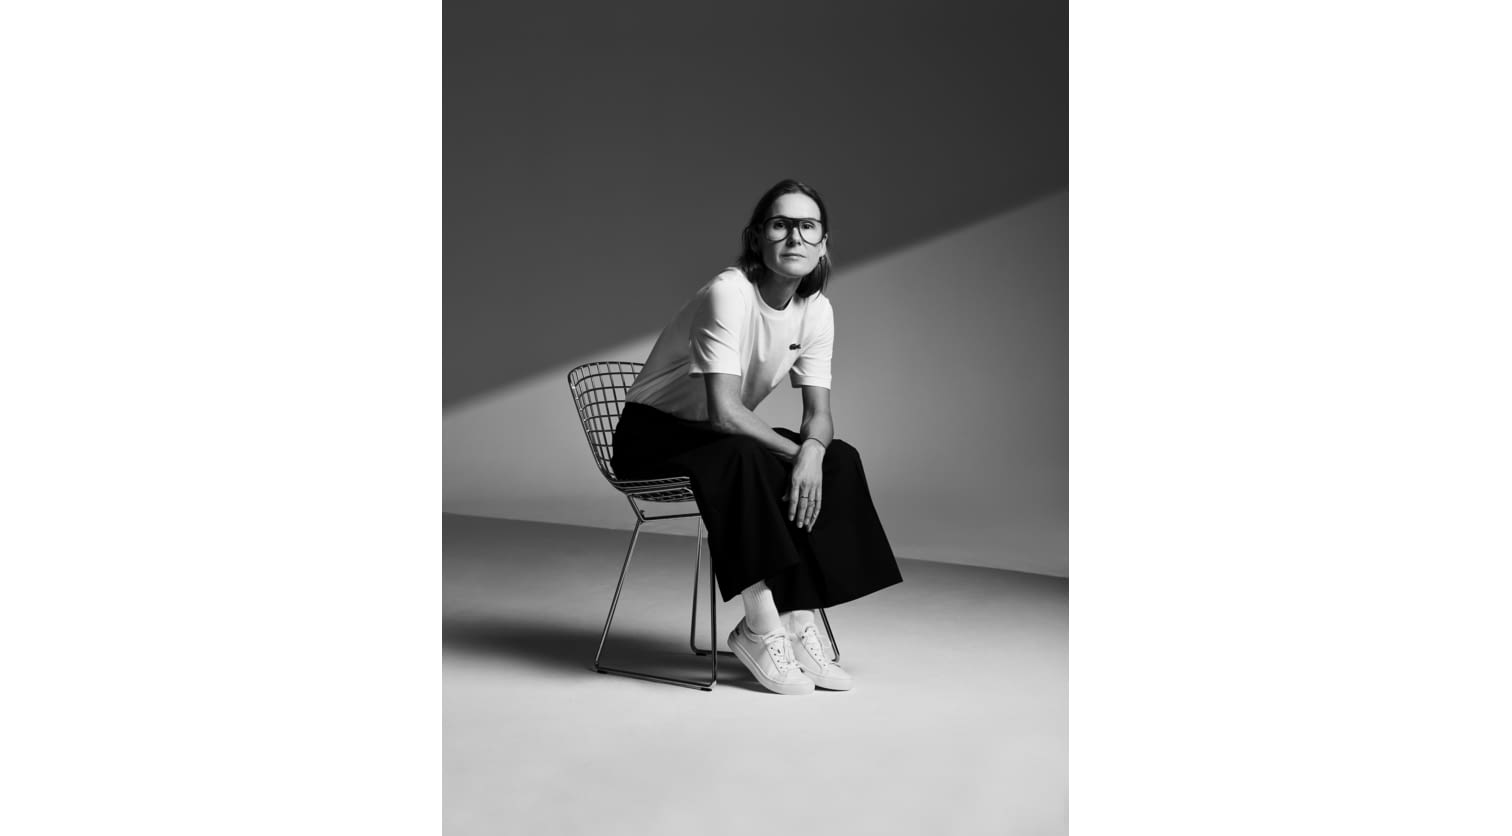 Louise_Trotter©Lacoste_Cyril_Masson.jpg